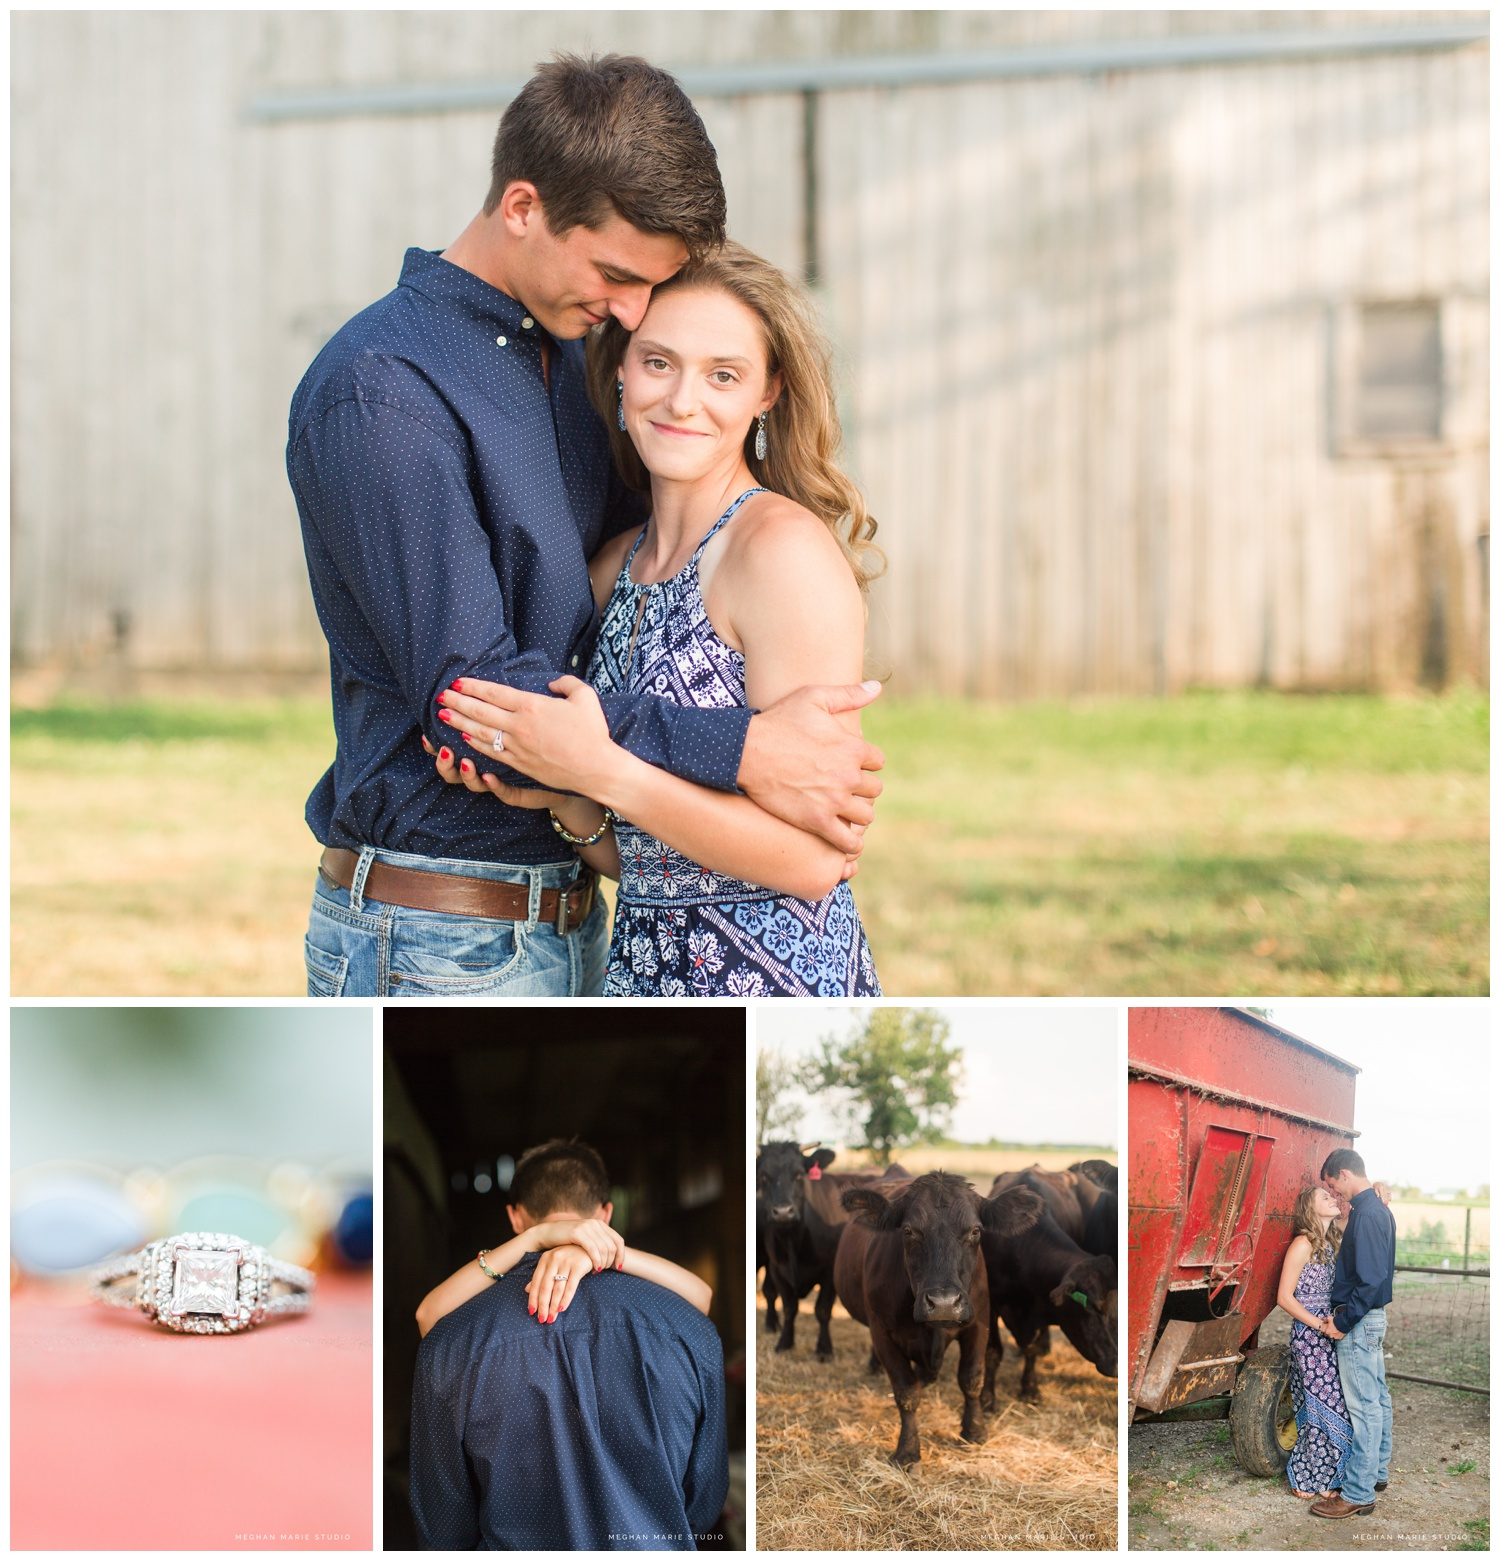 meghan marie studio wedding photographer ohio troy dayton columbus small town rustic rural farm cows russia shelby county barns antique vintage engagement lauren heaton_0548.jpg